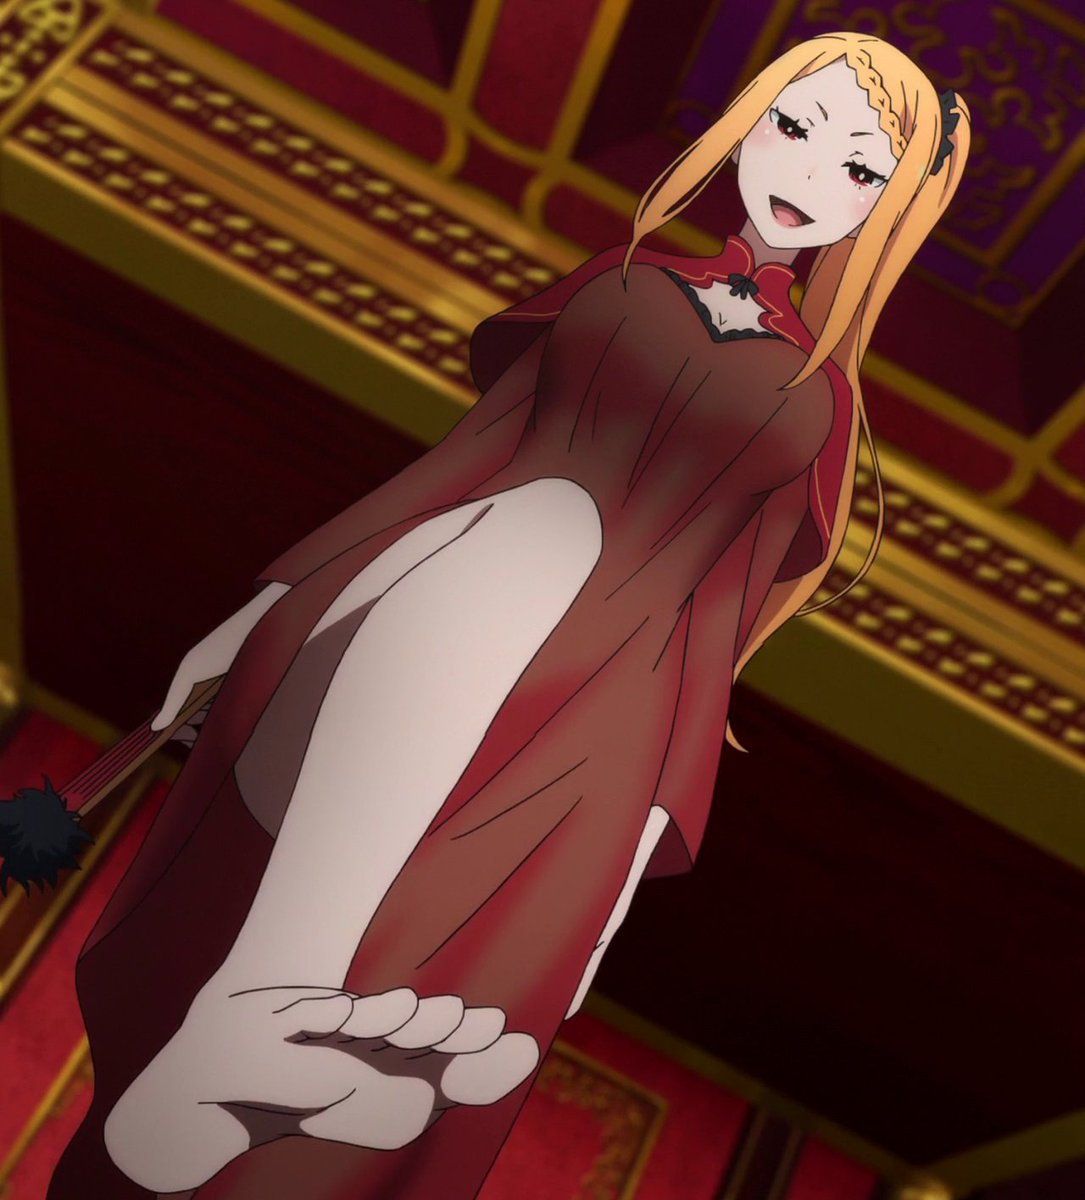 Does anyone else especially like girls feet in anime? : anime